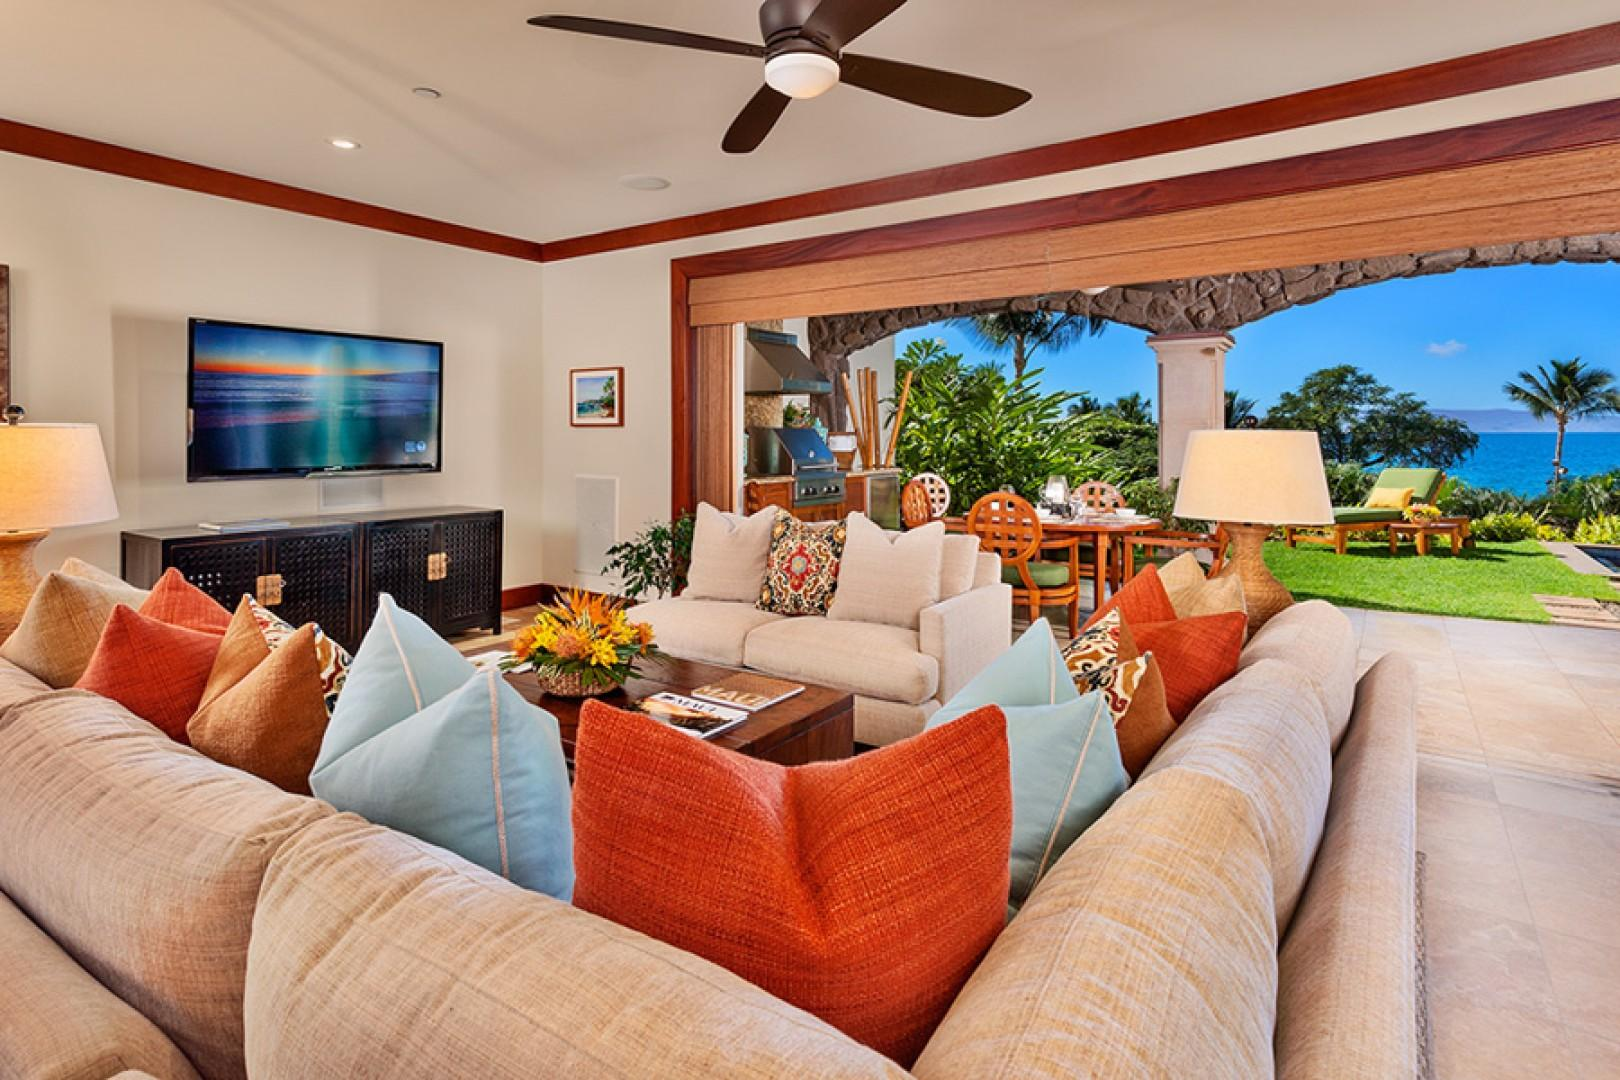 Ocean View Colorful Great Room with New Furnishings & Decor - Coco Palms Pool Villa D101